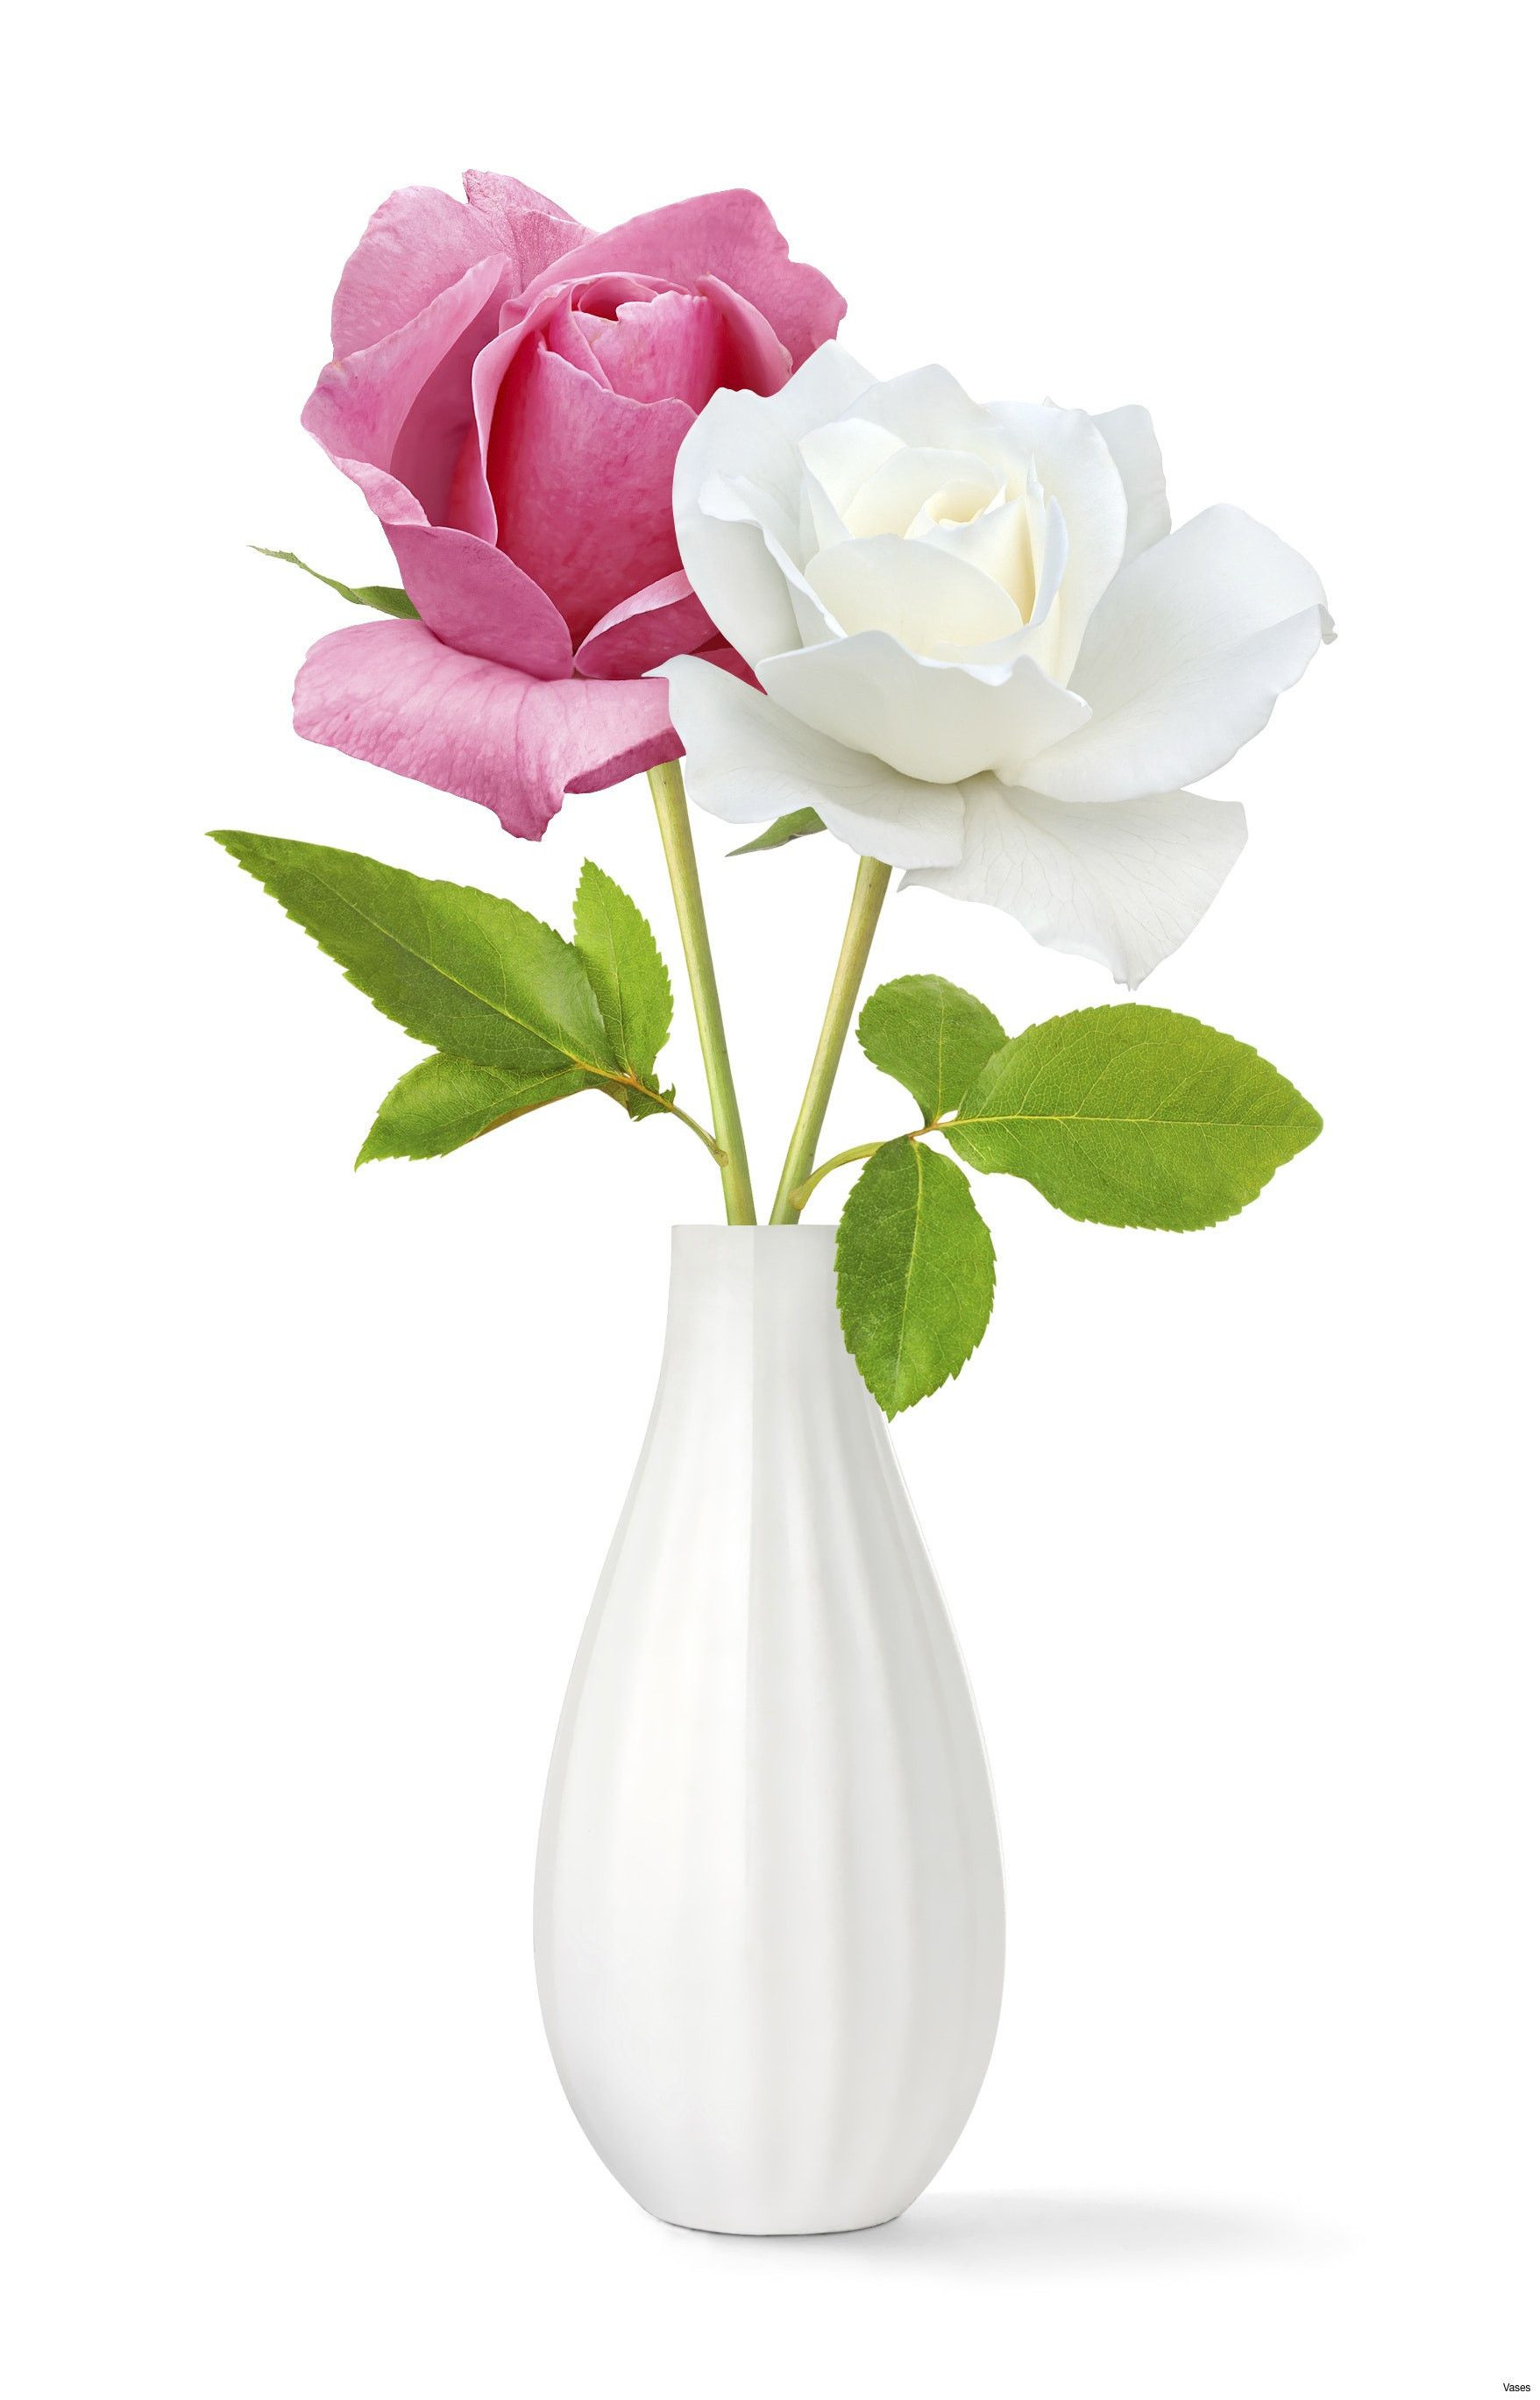 23 Best Red Eiffel tower Vases 2021 free download red eiffel tower vases of light pink vase elegant roses red in a vase singleh vases rose intended for light pink vase elegant roses red in a vase singleh vases rose single i 0d scheme